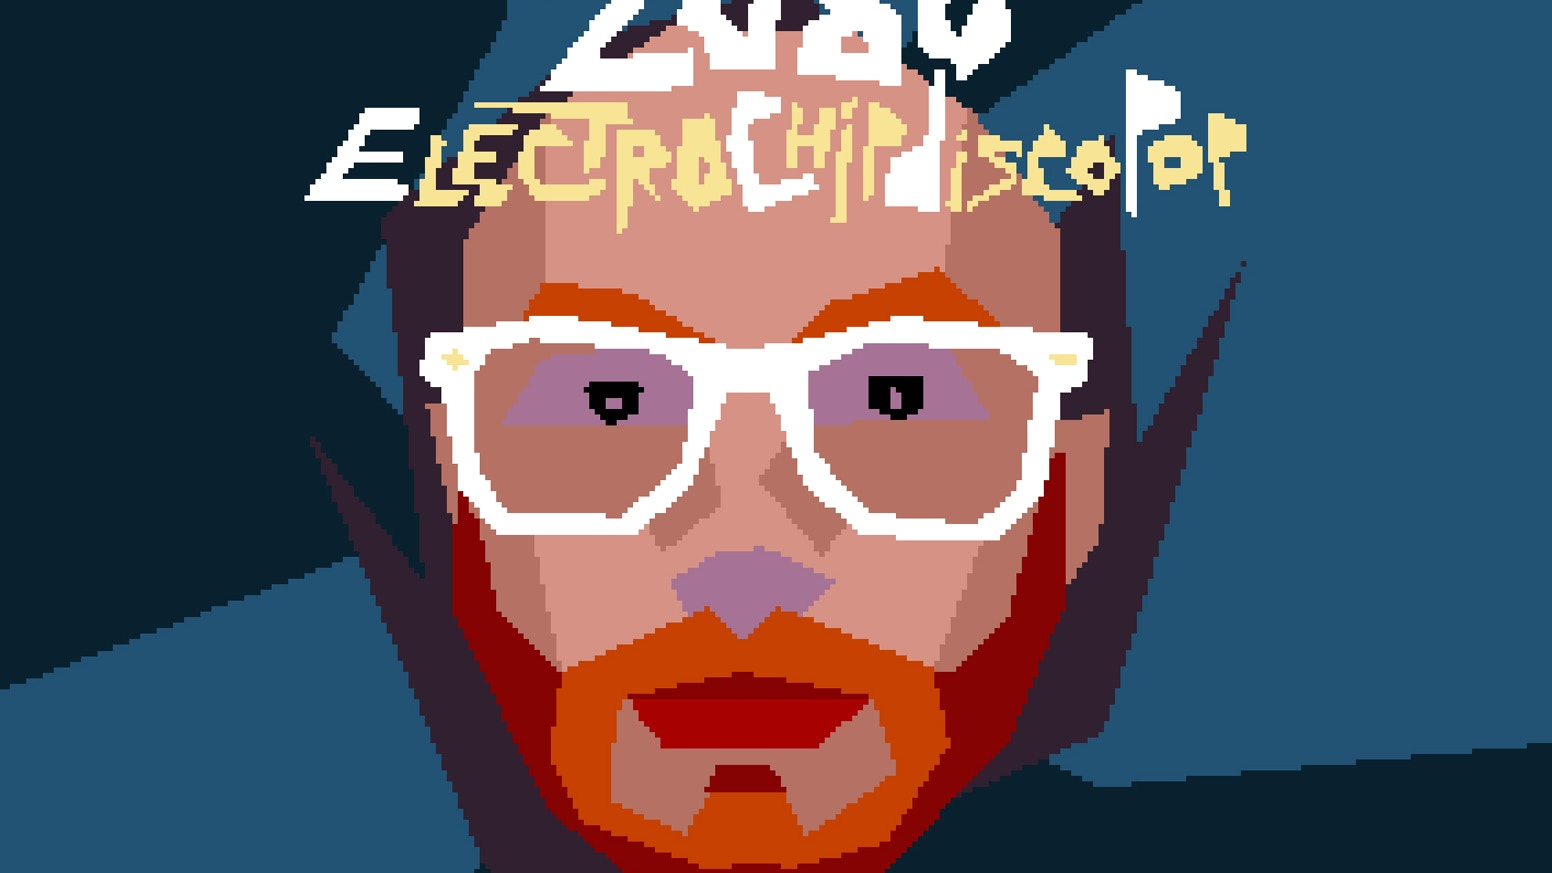 2080 ElectroChipDiscoPop EP premium CD and Vinyl production  by 2080